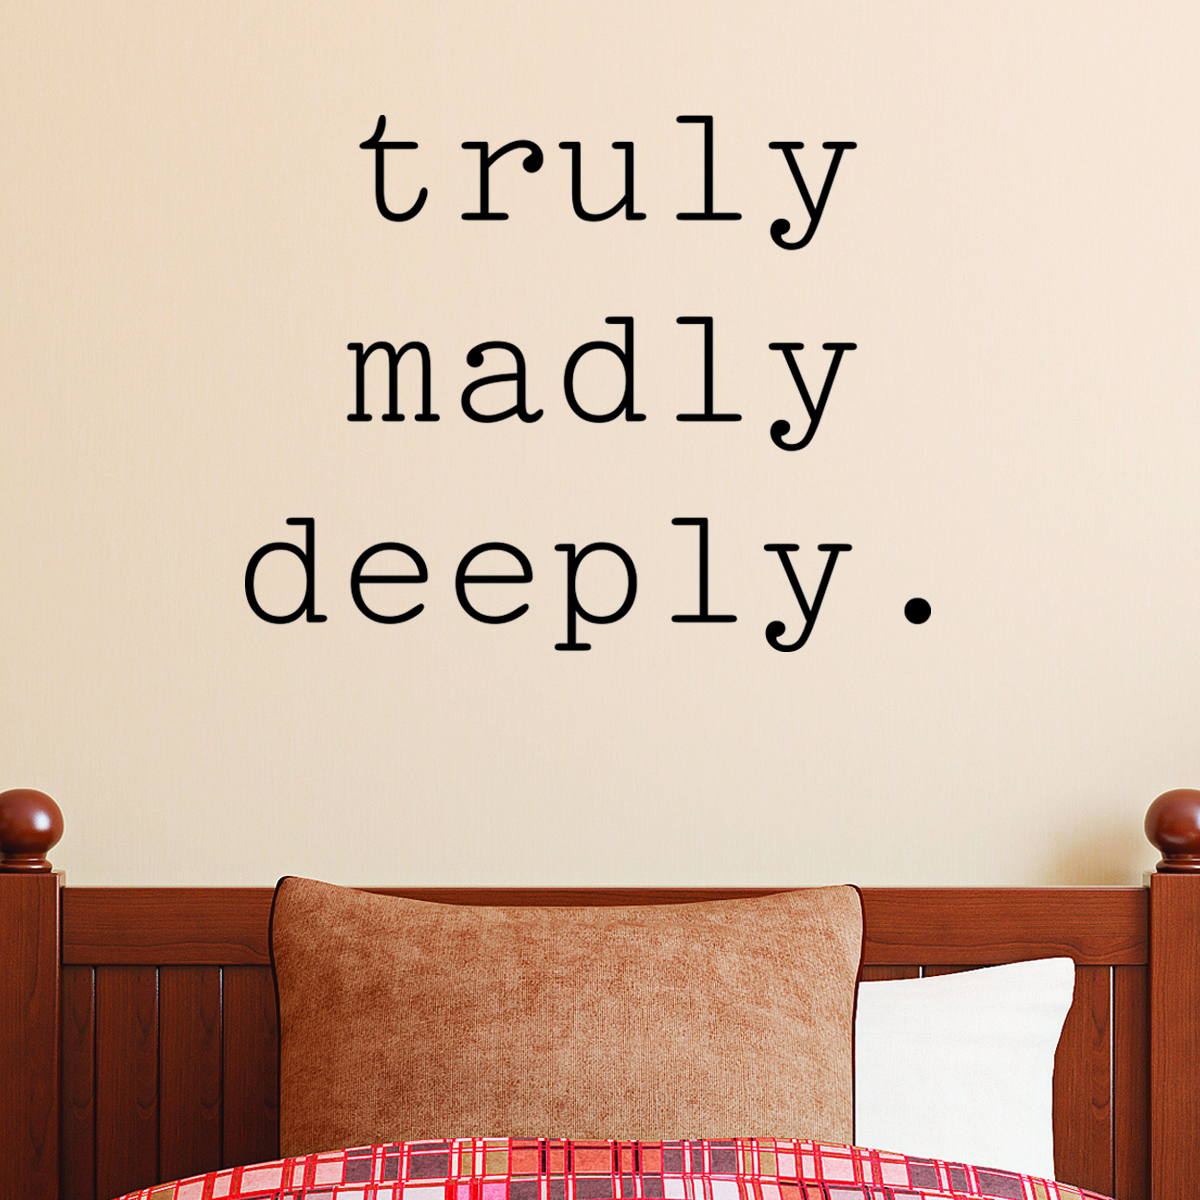 Love You Truly Madly Deeply Quotes - quotes